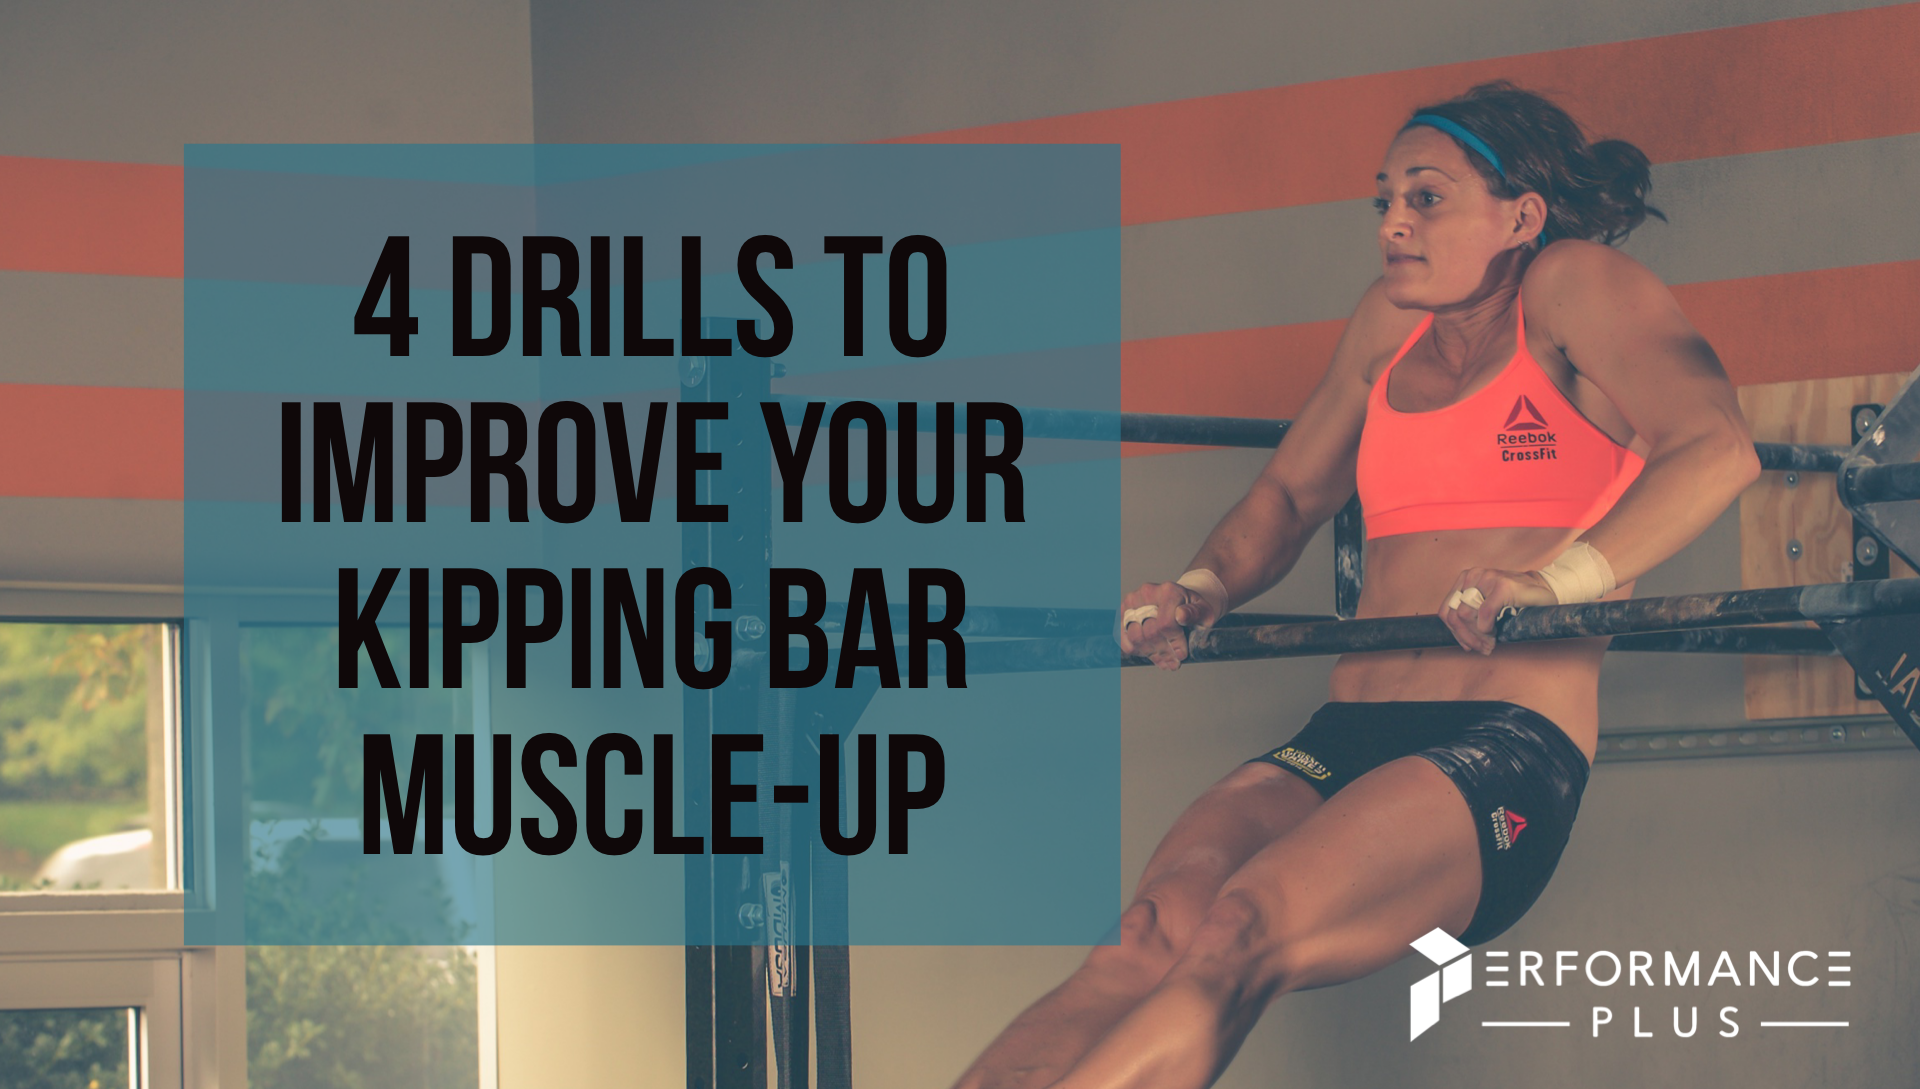 4 DRILLS TO IMPROVE YOUR KIPPING BAR MUSCLE-UP